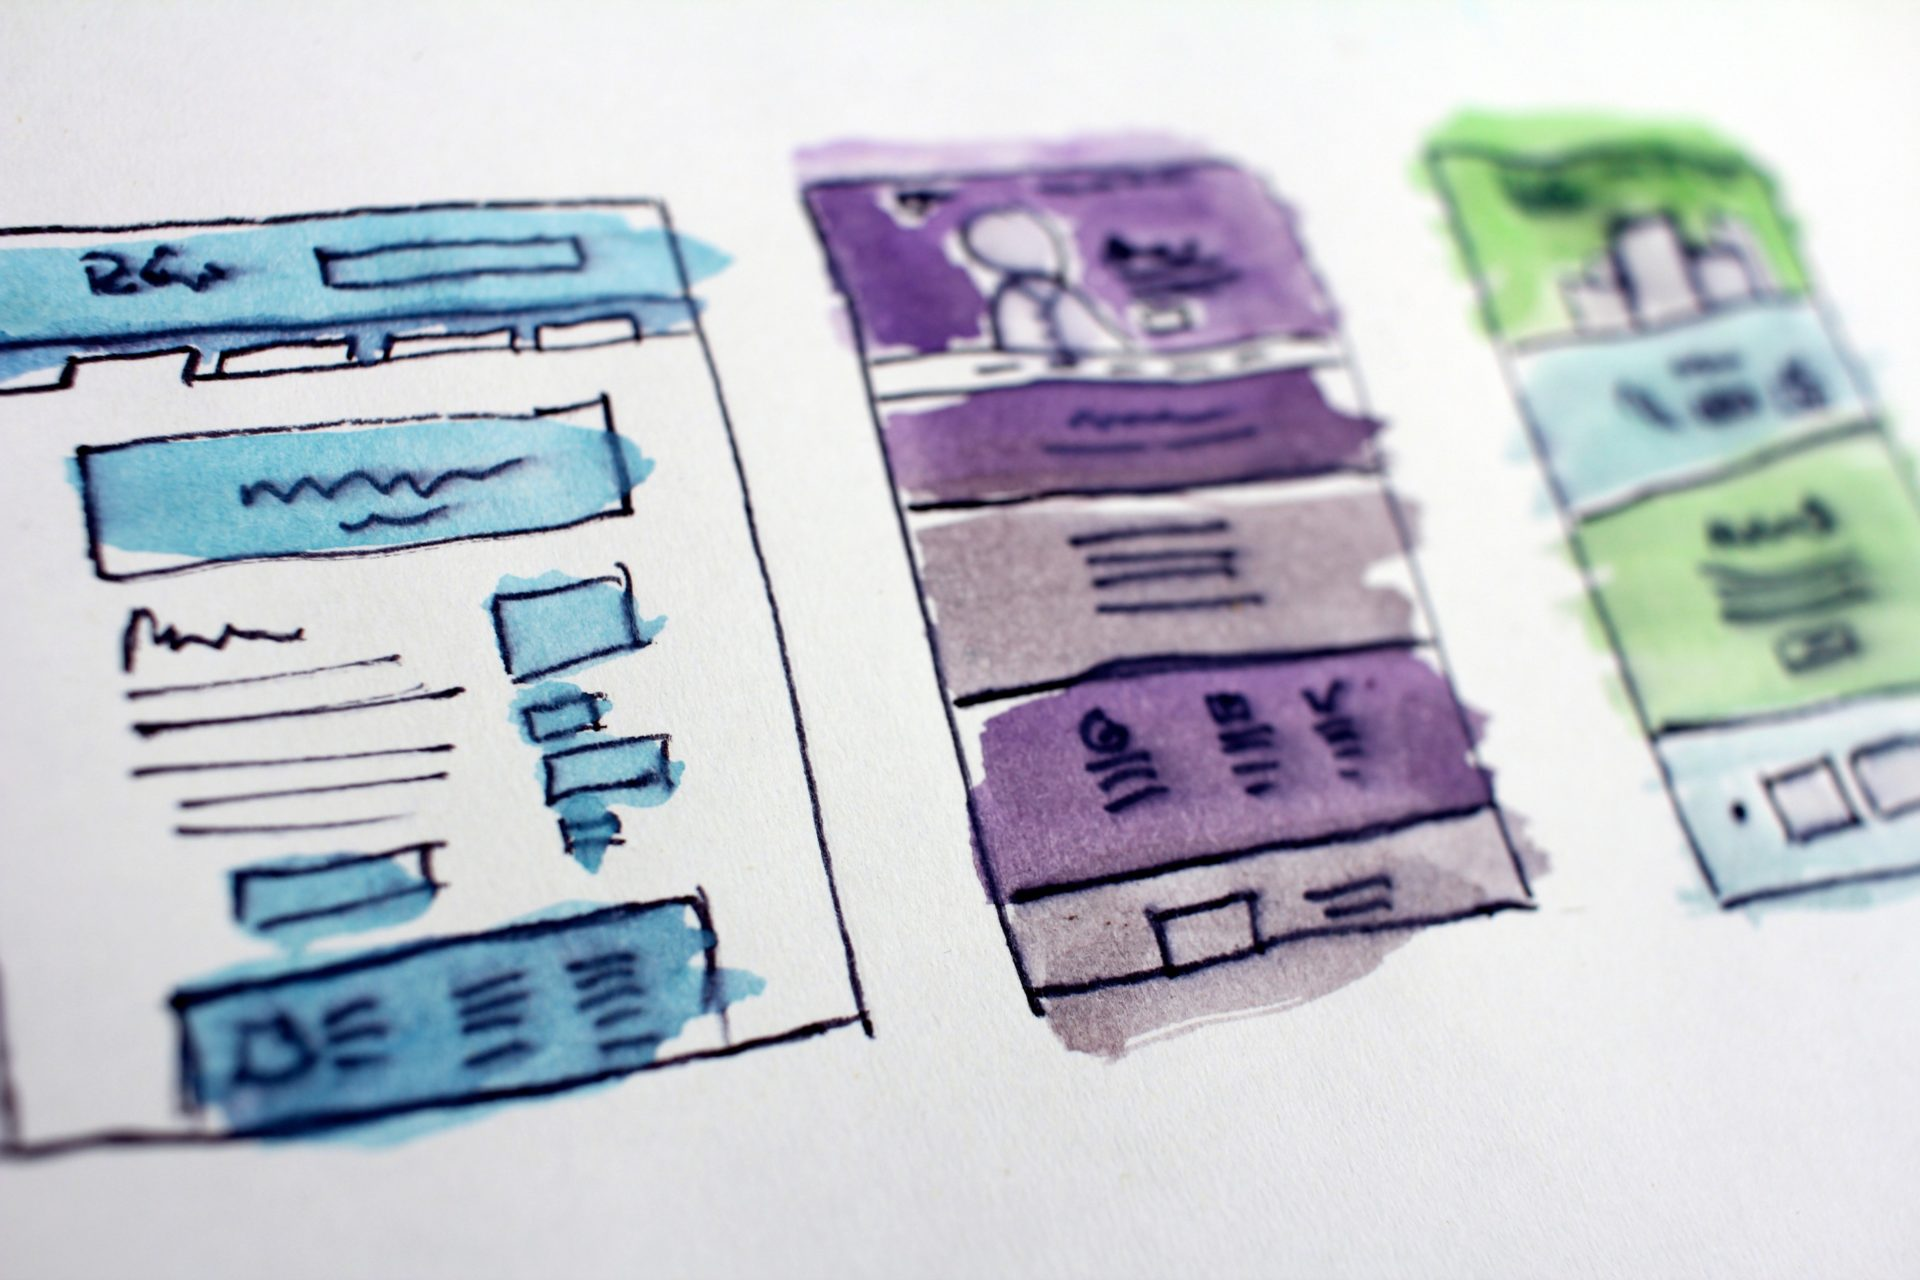 Watercolored examples of websites